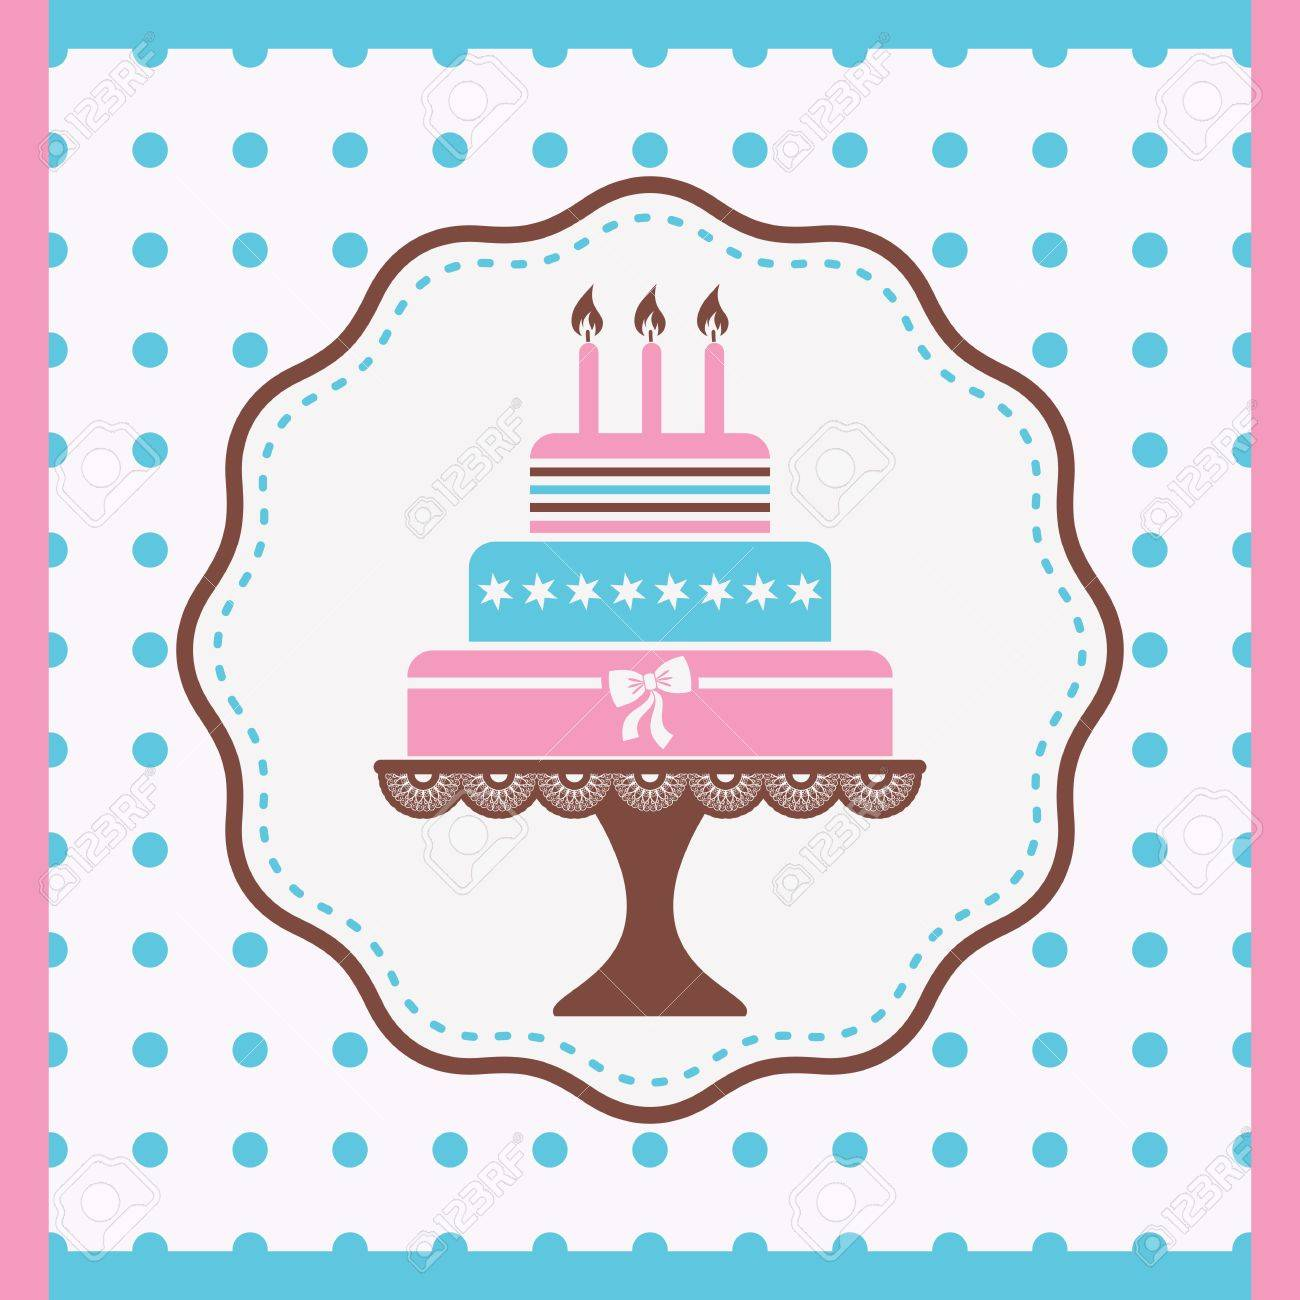 Beautiful Vintage Happy Birthday Card With Cake Stock Vector